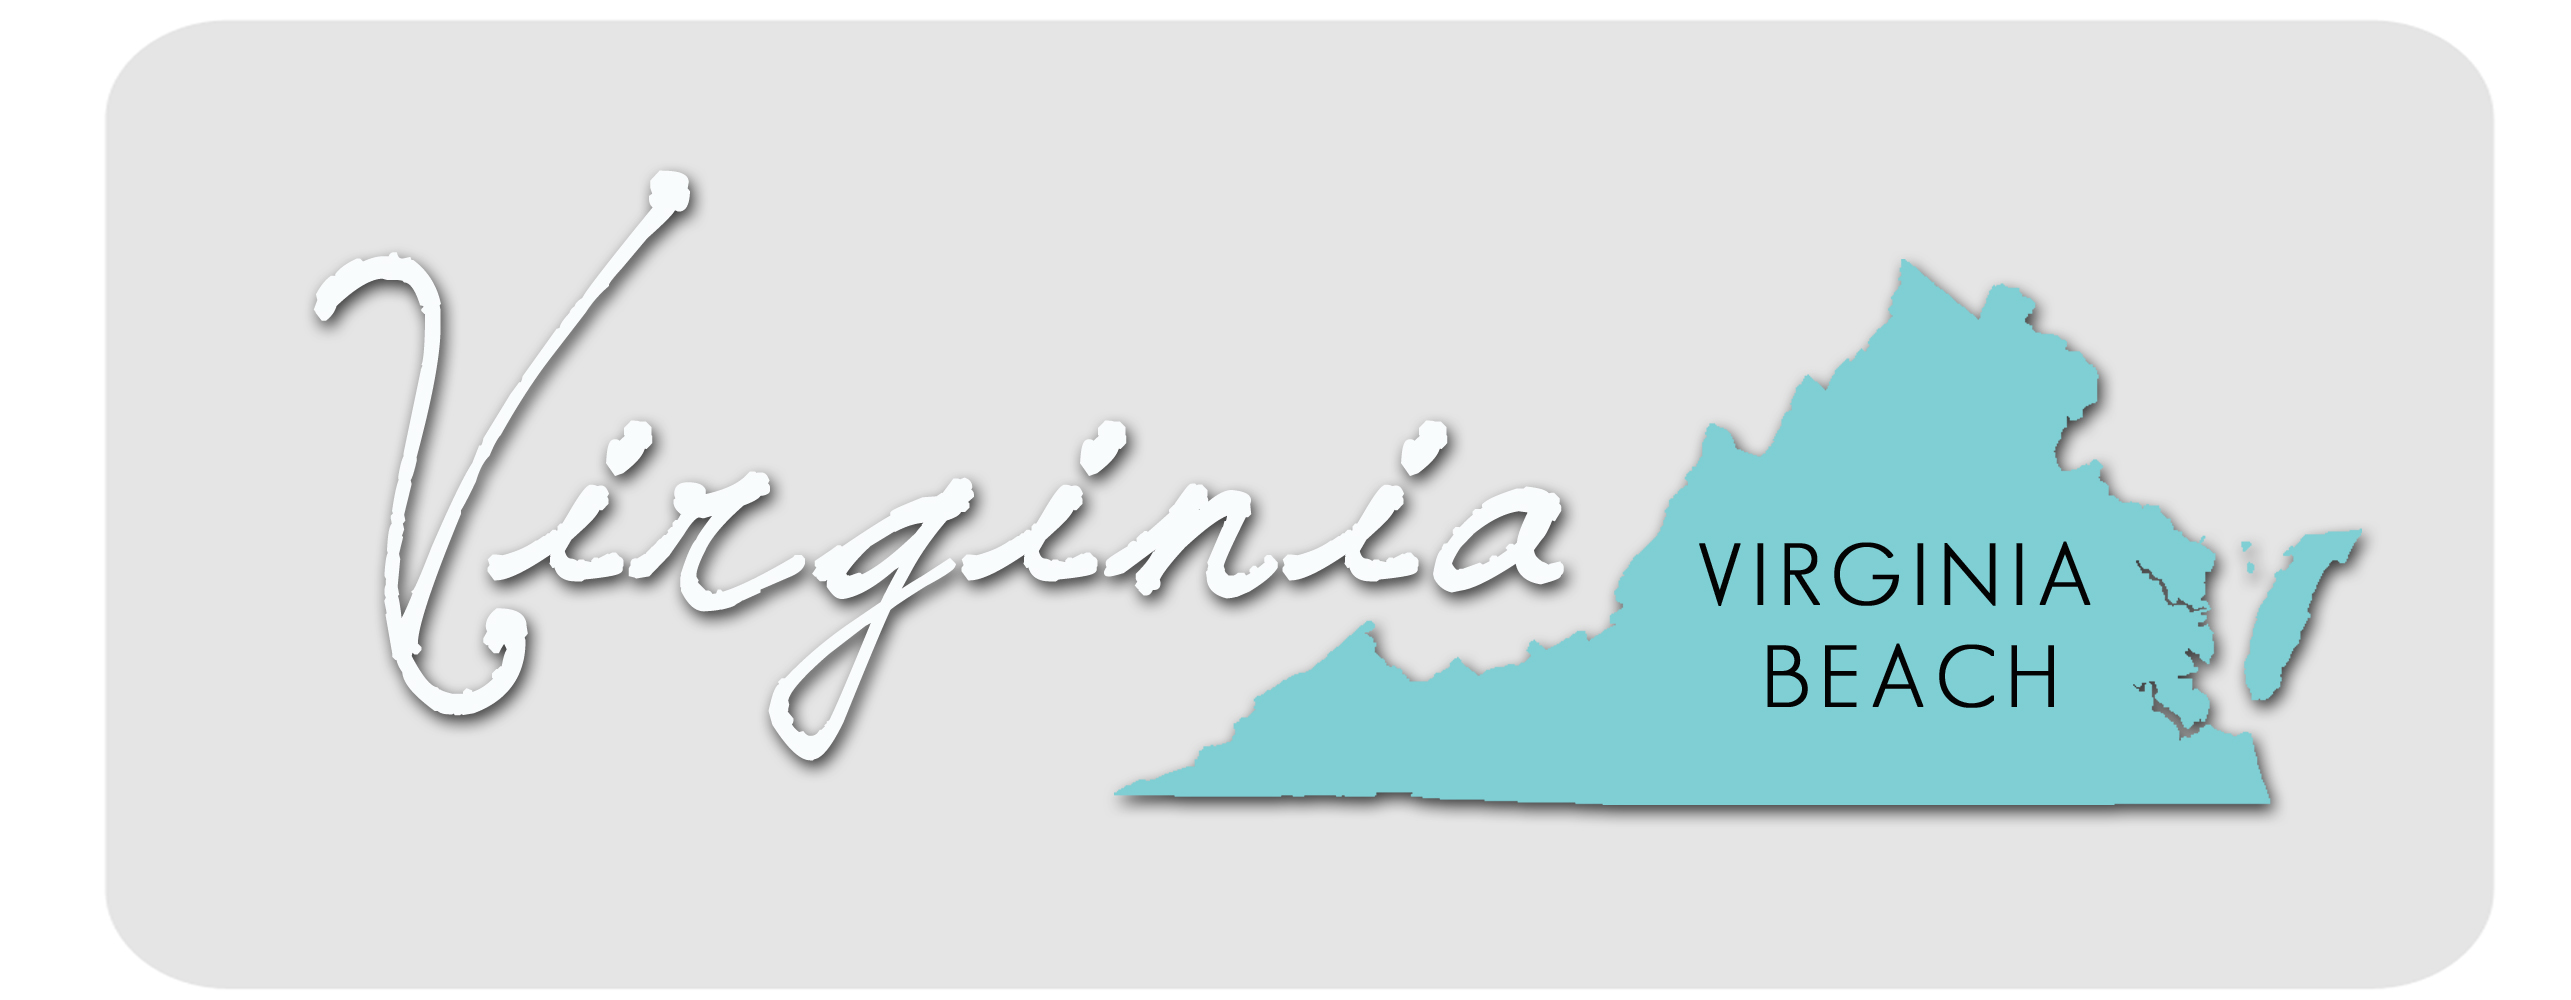 virginia beach health insurance